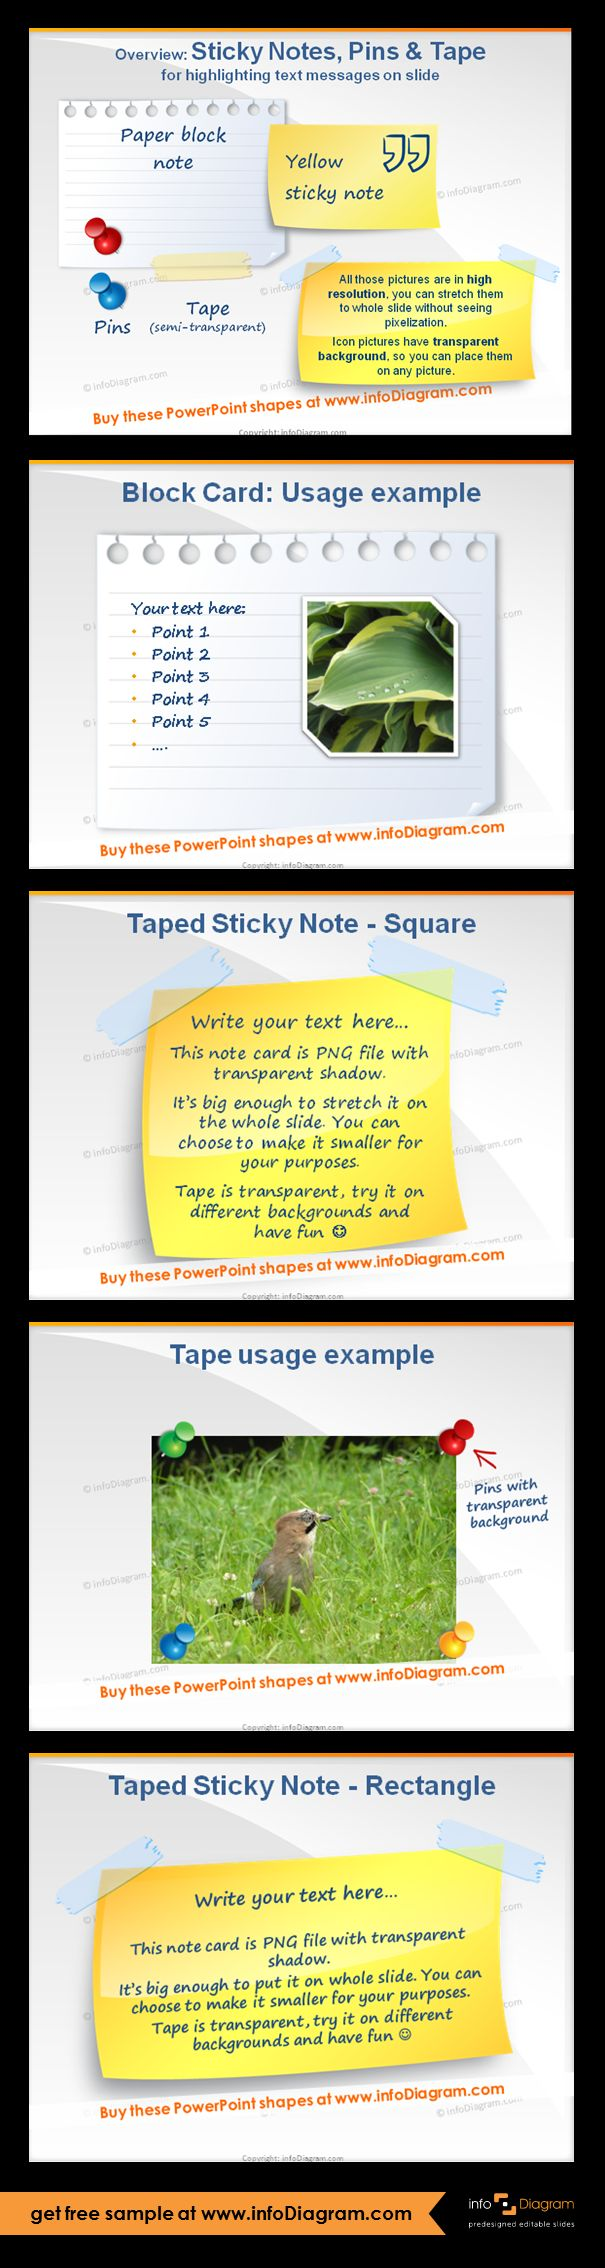 Graphical elements for PowerPoint - Sticky Notes, Pins, Adhesive Tape pictures. Bitmap pictures inside PowerPoint file PP TX, resolution for full slide size. Usage example of a block card, taped square and rectangle post-its, tape usage example. Picture shapes for enhancing PowerPoint presentations:  to underline a quote or main message of the slide, to put over photograph (glue it, pin it), to simulate real paper post-it wall.